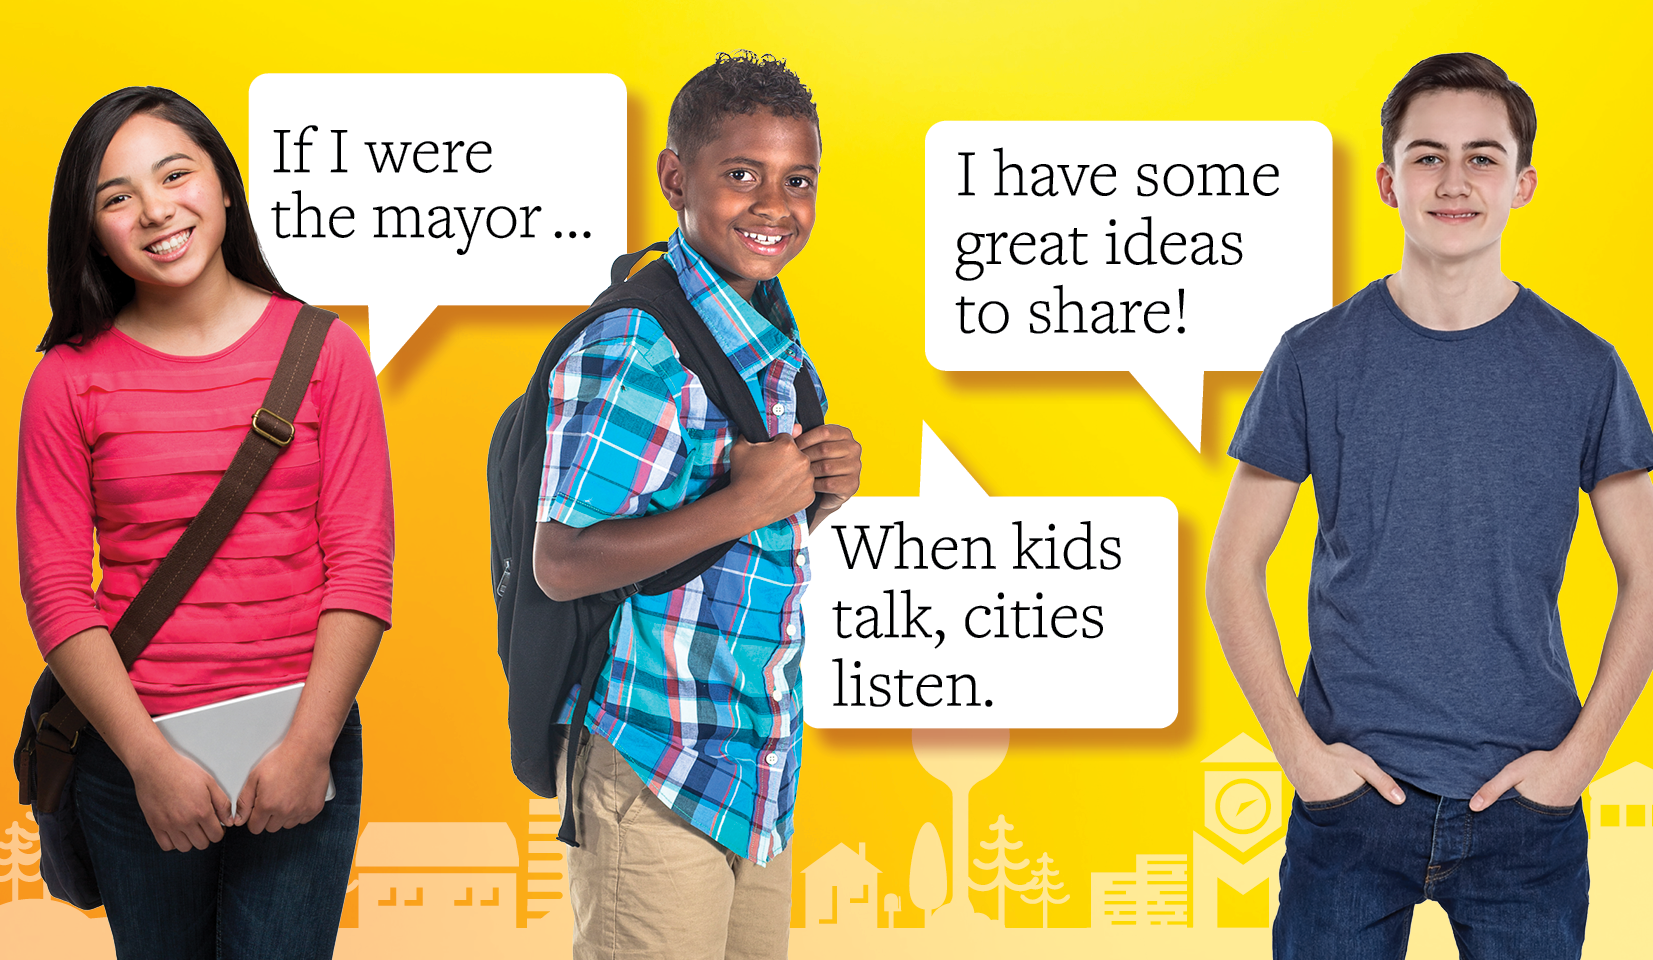 """On a bright yellow background, three students are smiling with backpacks and tablets. In conversation bubbles, the kids say """"If I were mayor ...,"""" """"When kids talk, cities listen,"""" and """"I have some great ideas to share!"""""""